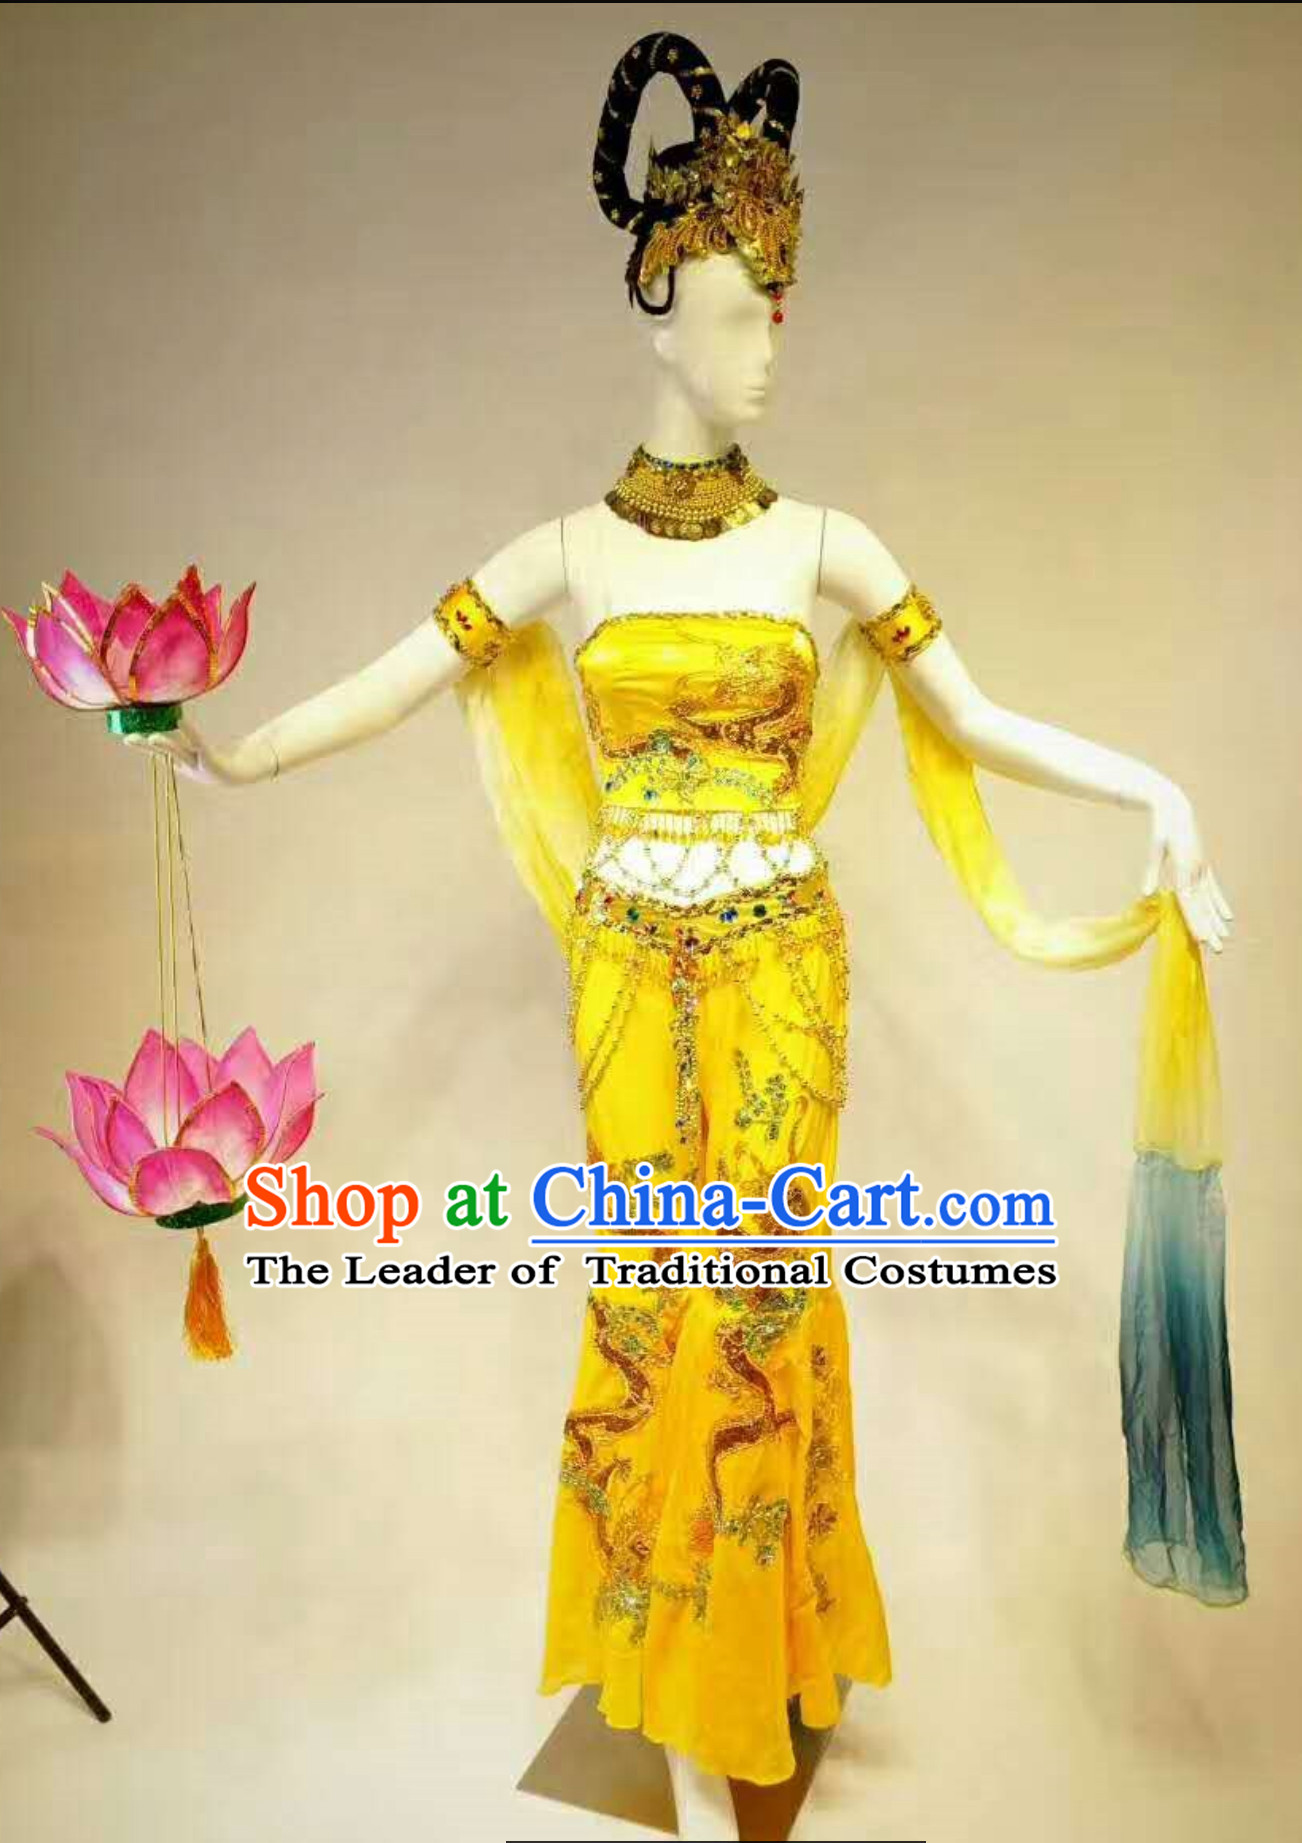 Professional Stage Performance Costumes Made to Order Custom Tailored Dance Costume, Lotus Props and Classical Headpieces Hair Accessories